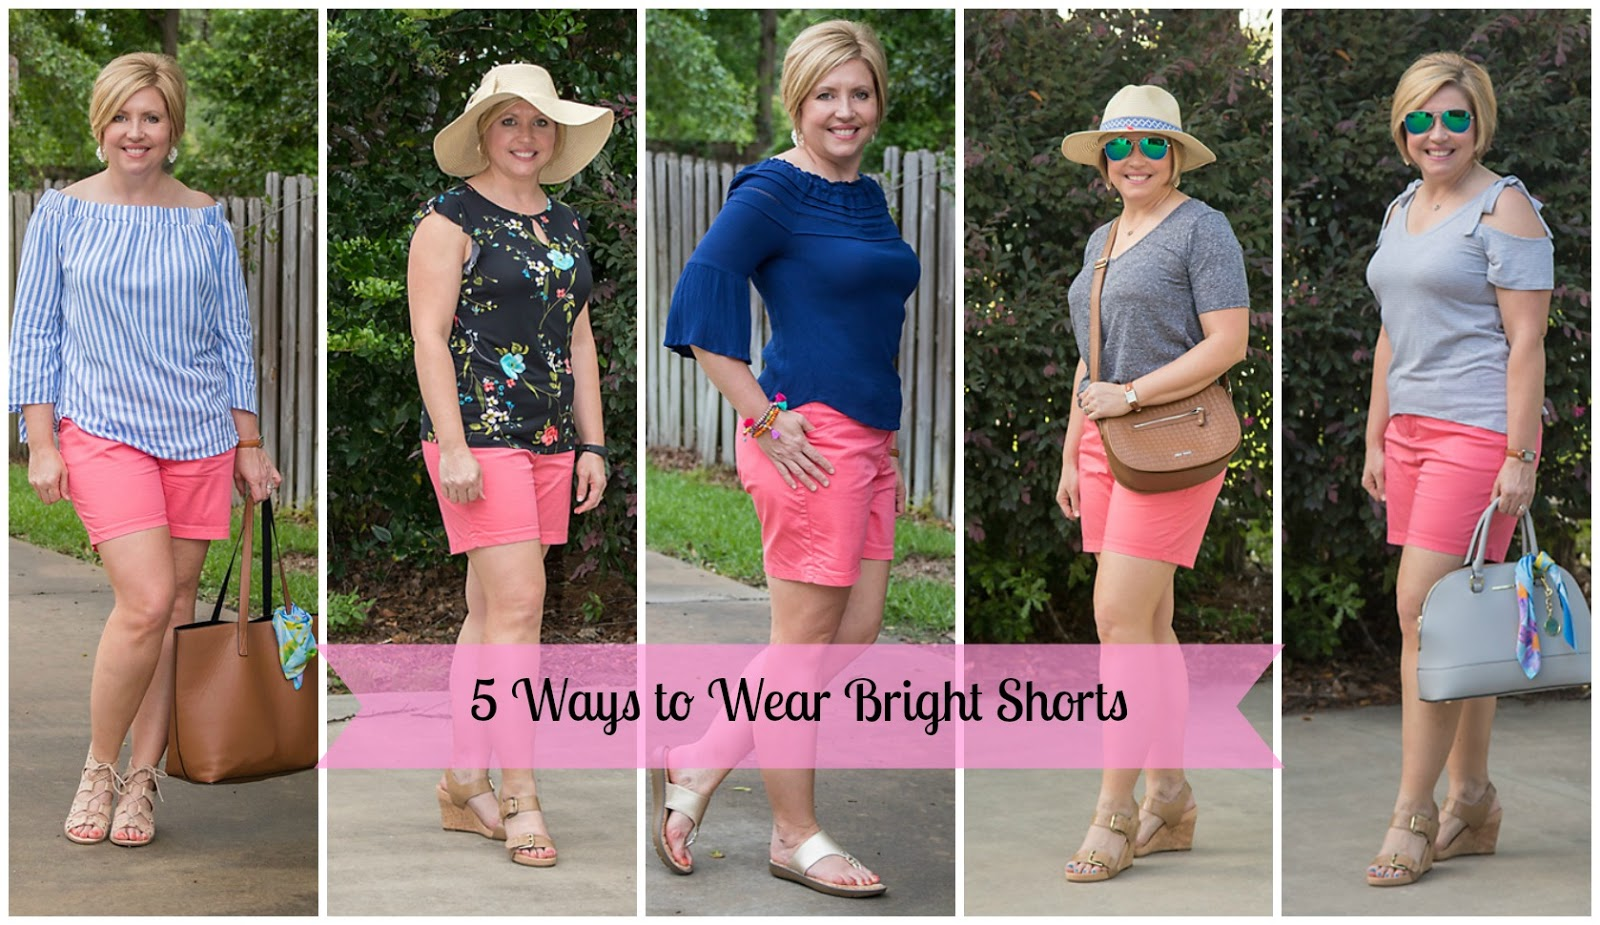 5 ways to wear bright shorts